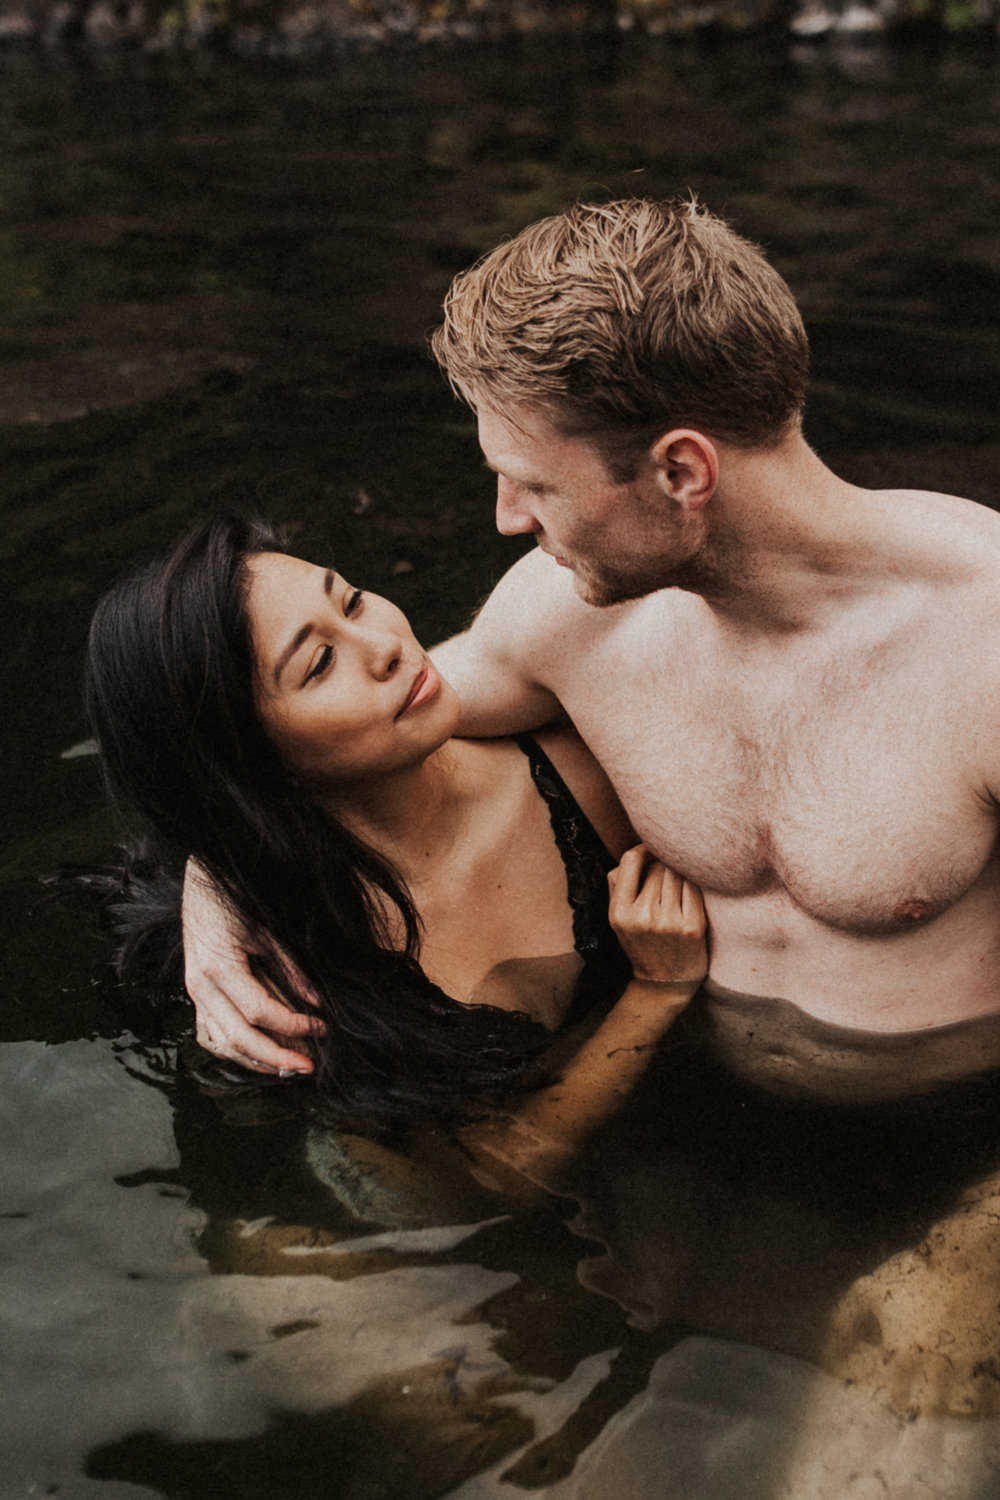 Beautiful mixed race couple in Seljavallalaug hot springs in Iceland.jpg